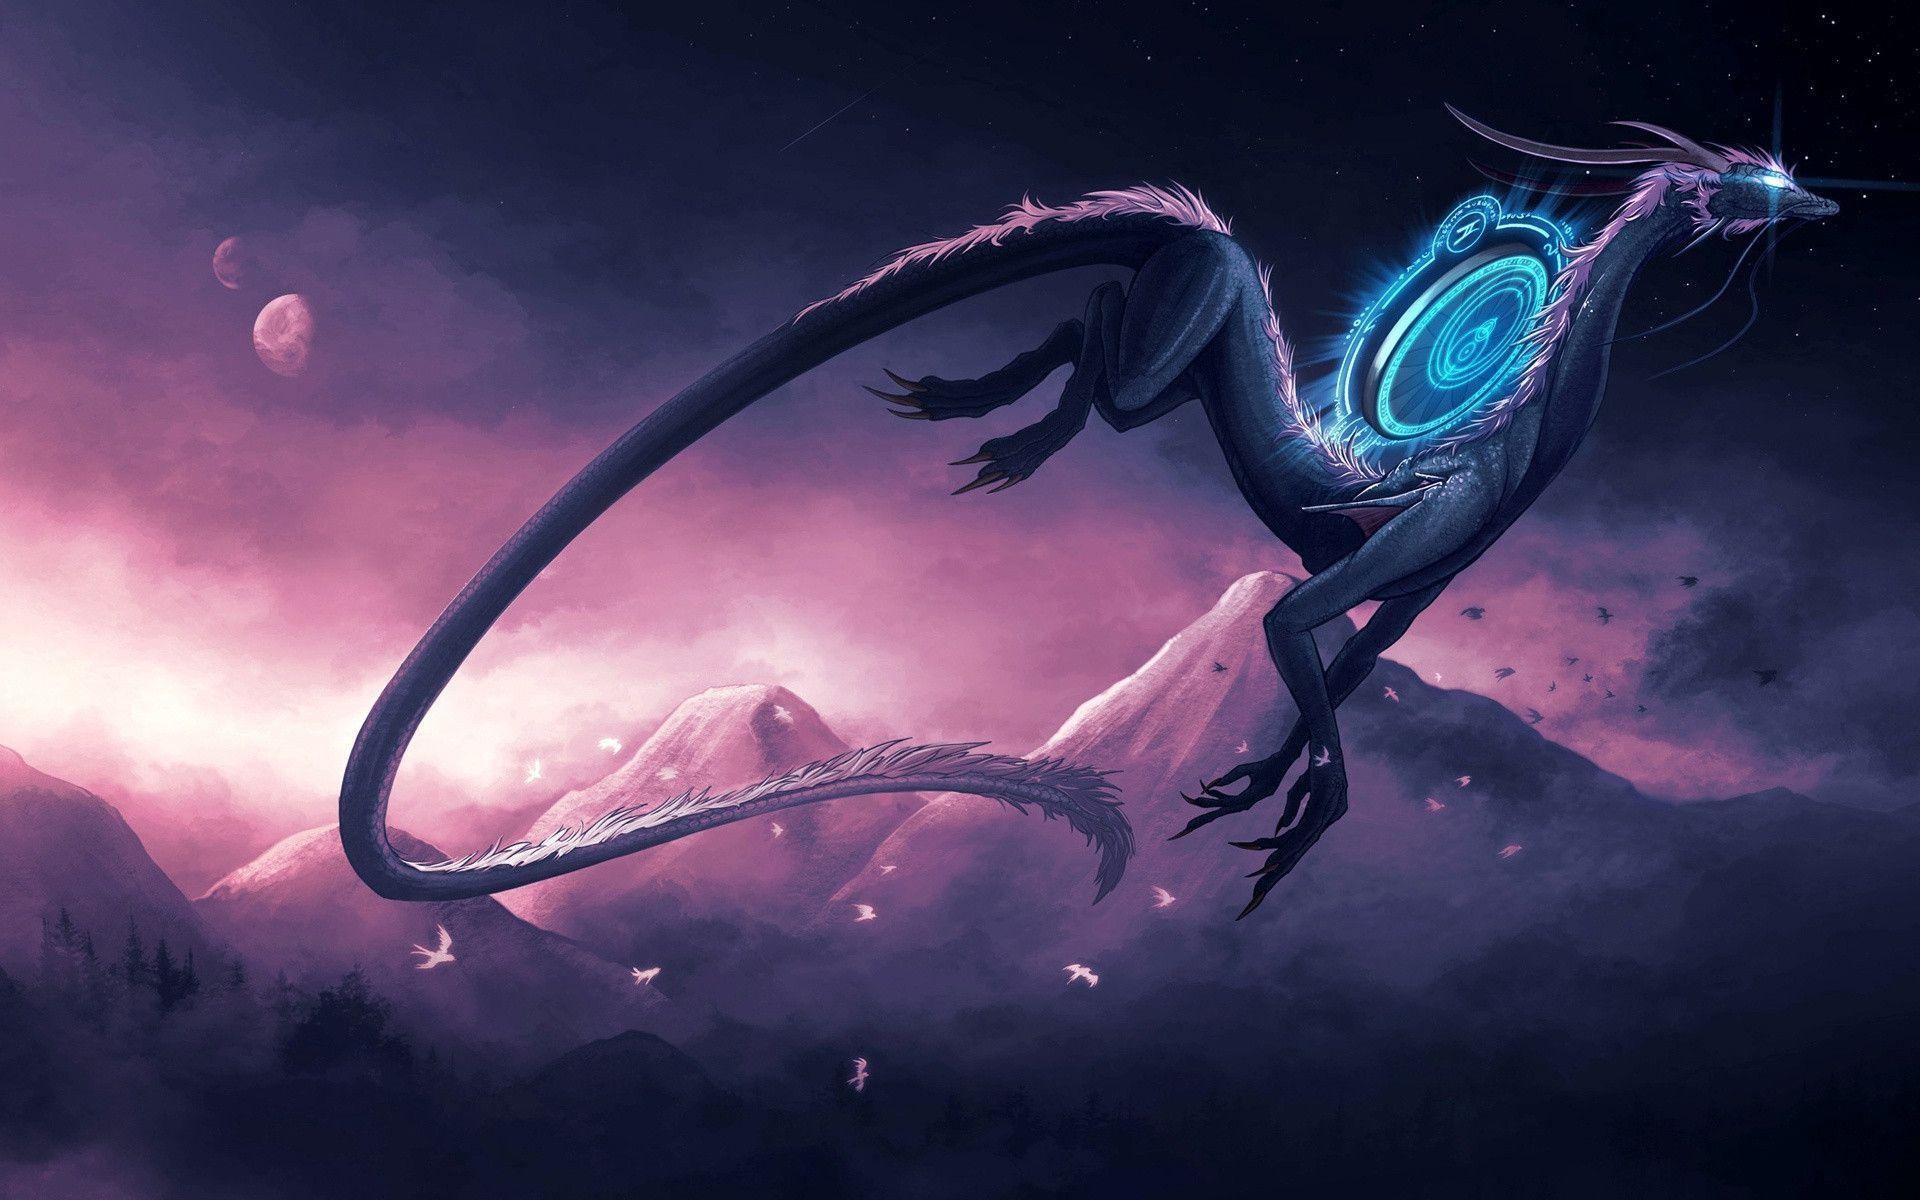 Cool Dragon Backgrounds For Computers That Move Wallpaper Cave